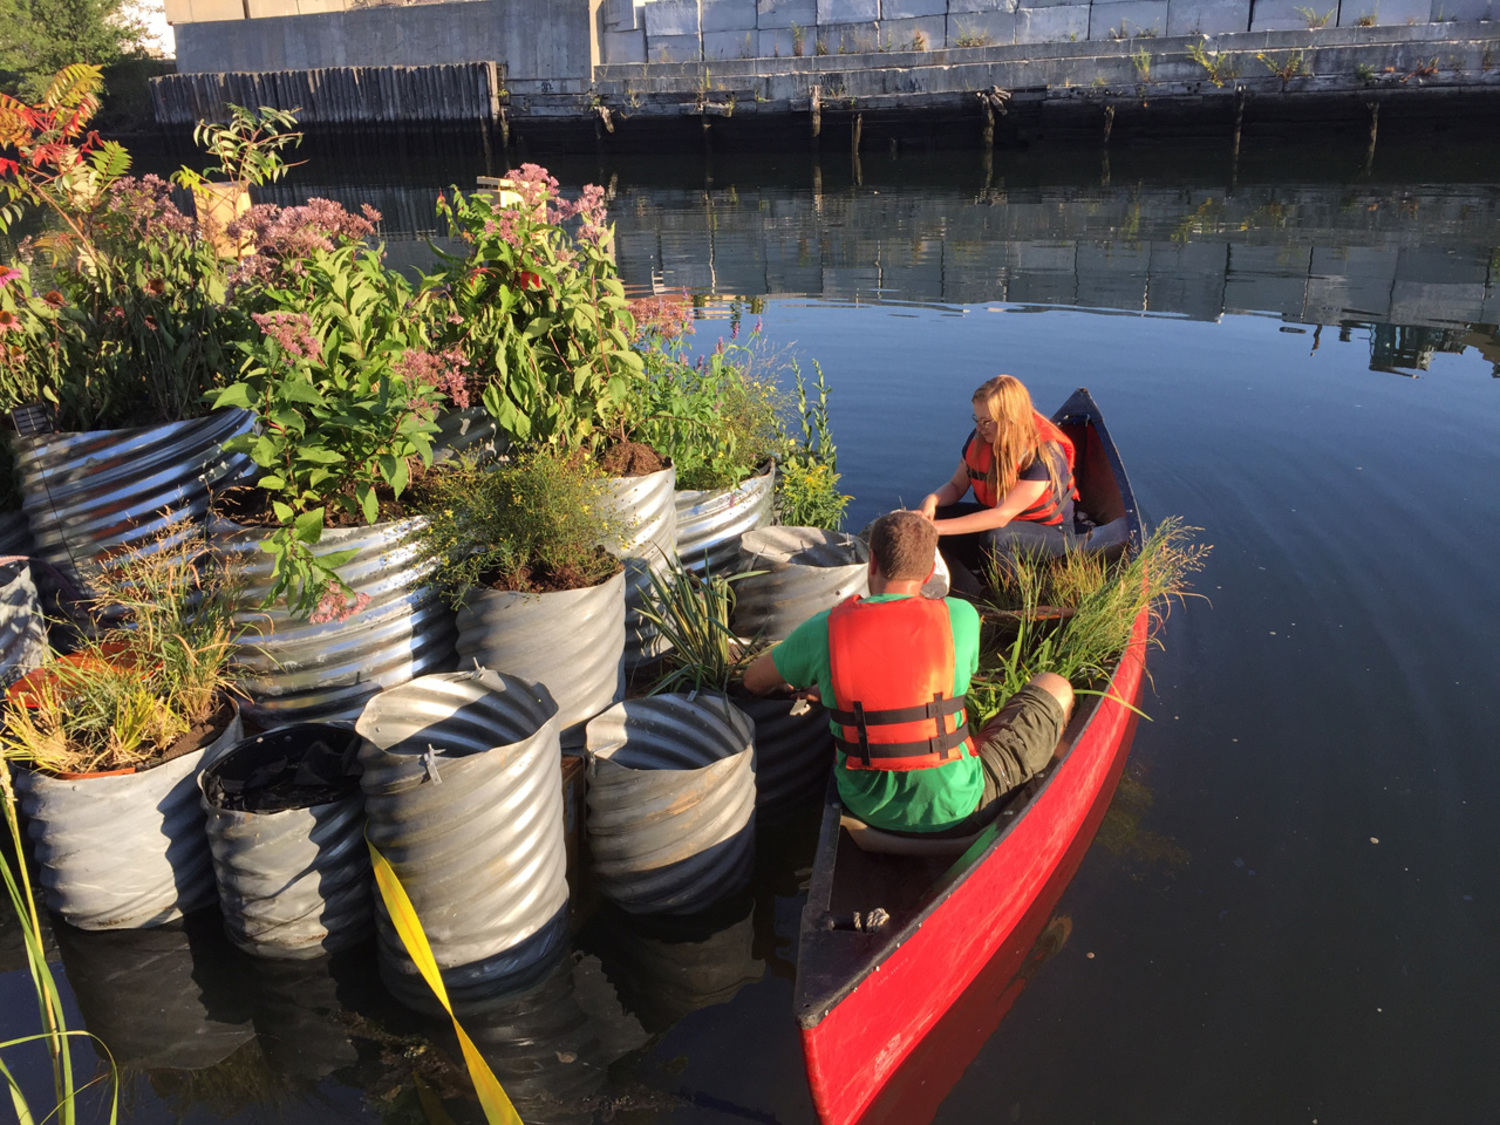 Balmori has made three previous prototypes. It hopes one day to scale up the concept and offset the cost by selling herbs and other greenery back into the city (though not, one hopes, from the Gowanus).